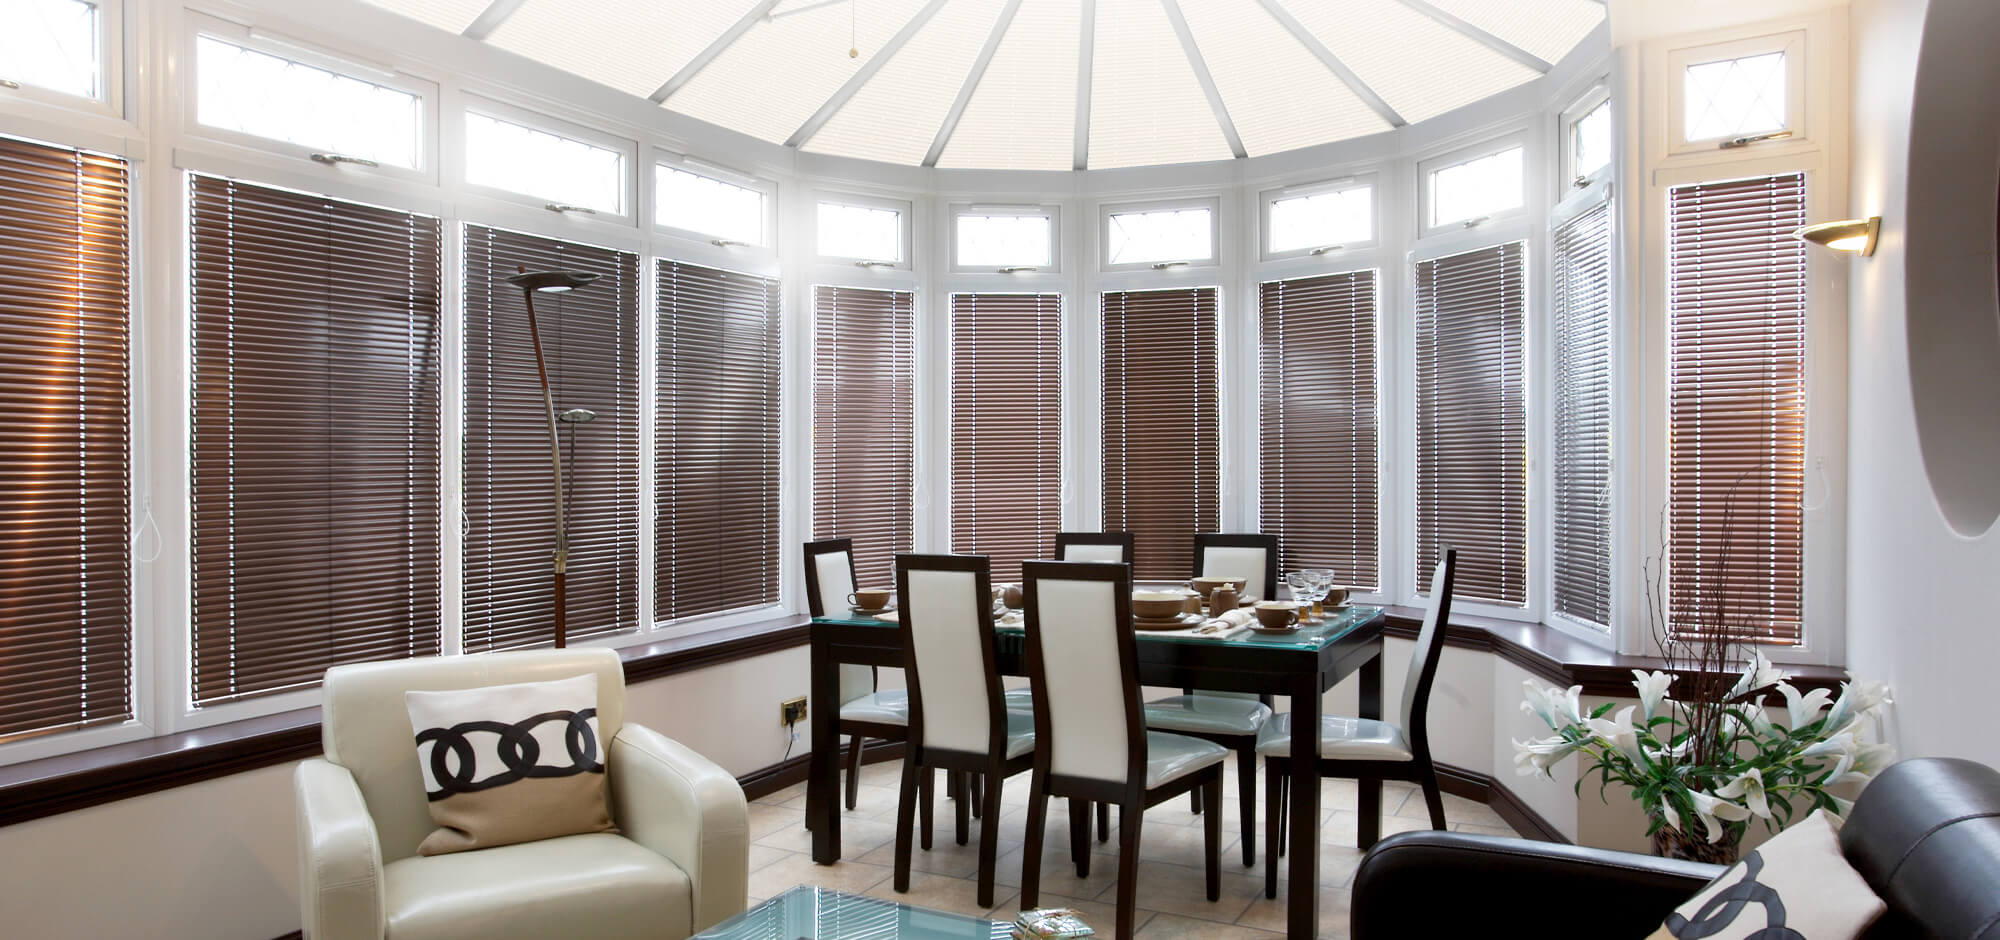 marla conservatory blinds - cool in summer